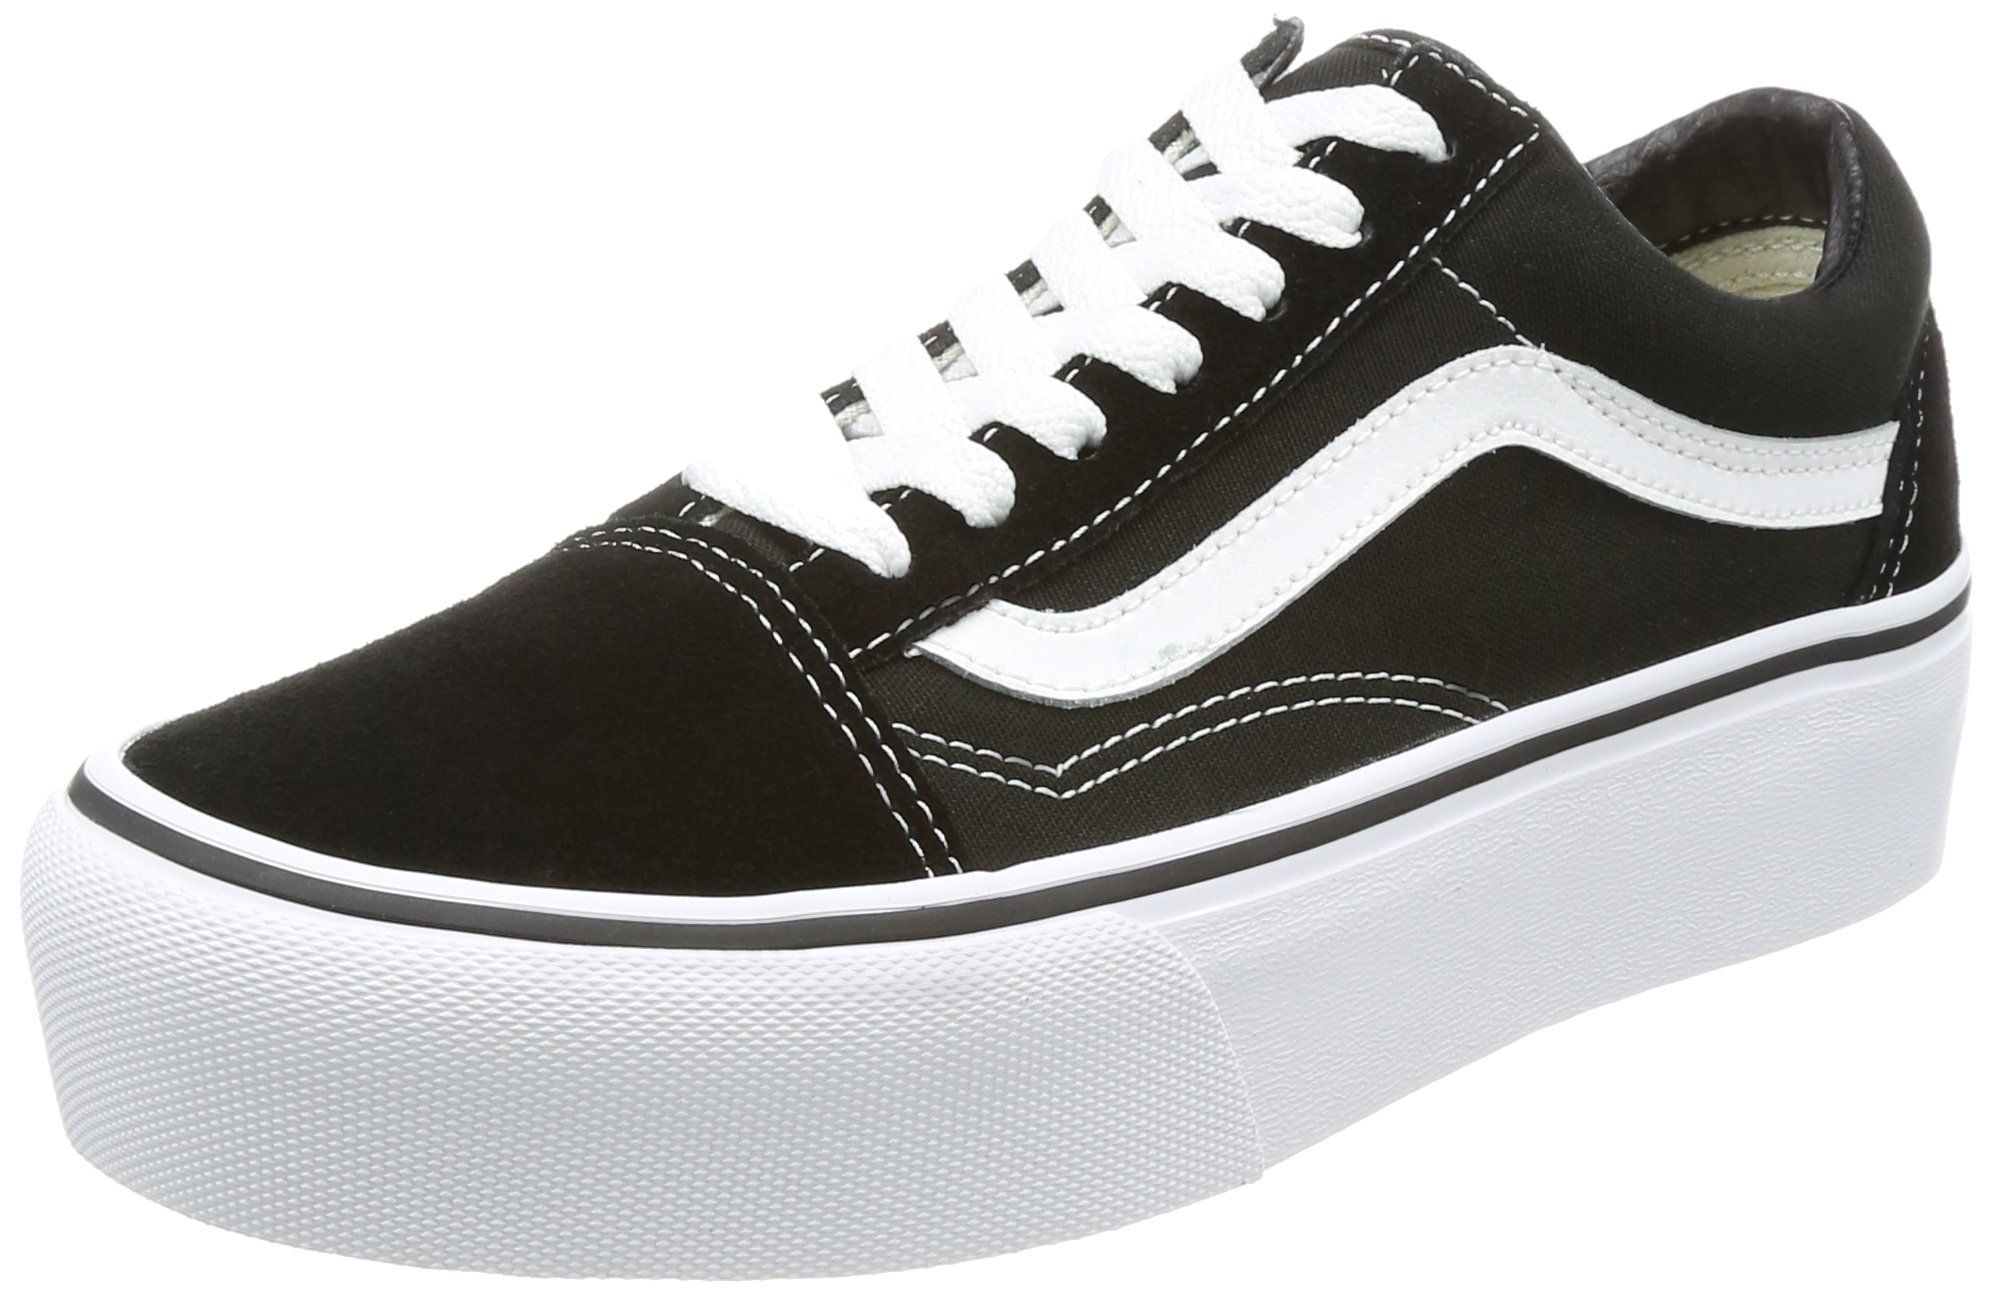 6326a234e6 Galleon - Vans Shoes Woman Low Sneakers VN0A3B3UY28 Old Skool Platform Size  37 Black White